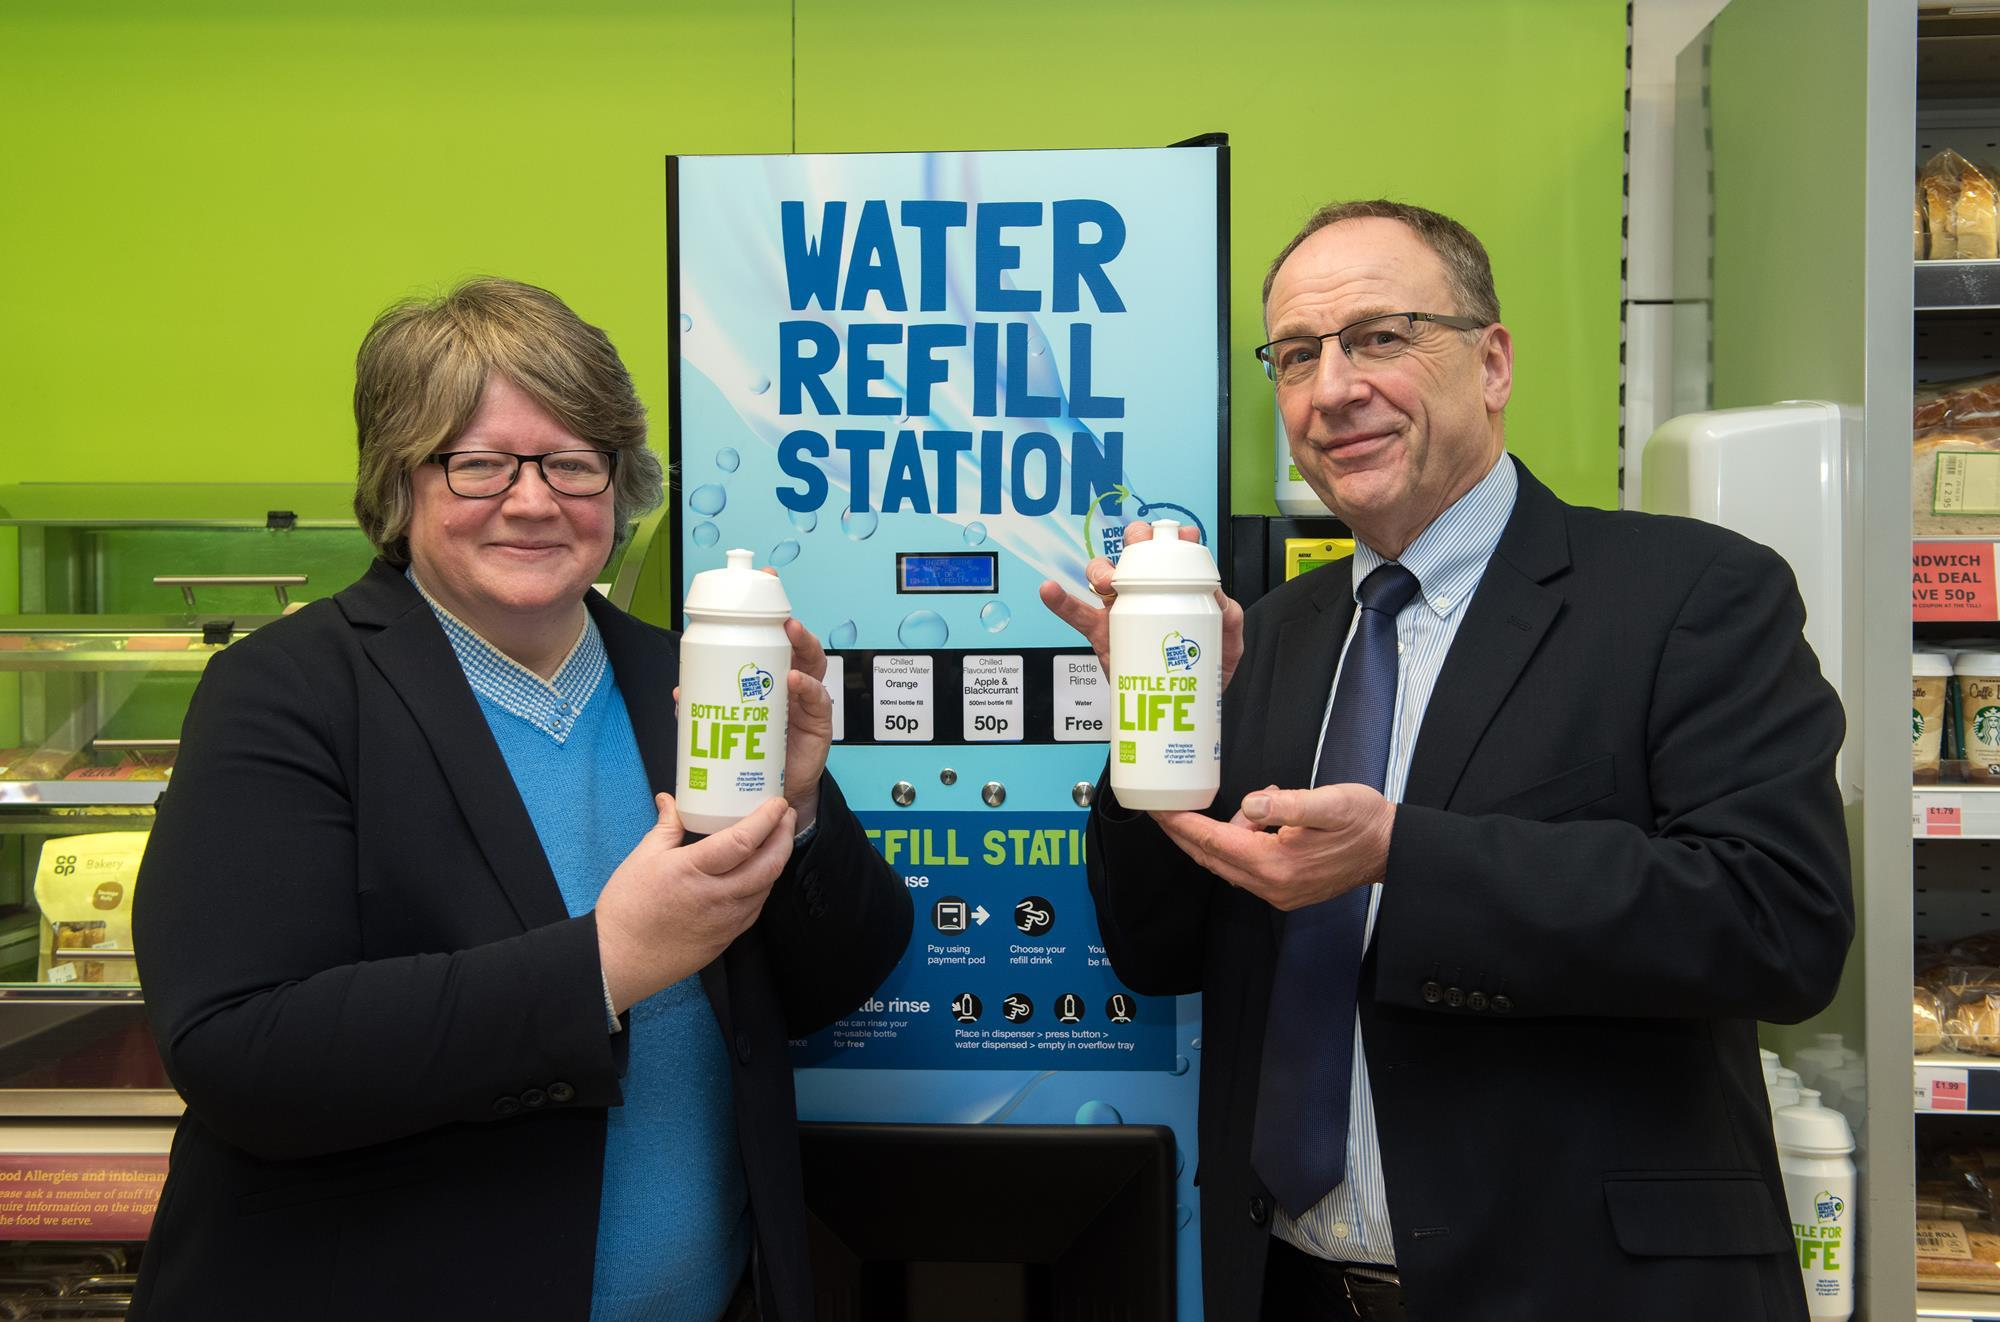 East of England Co-op trials water refill stations | News